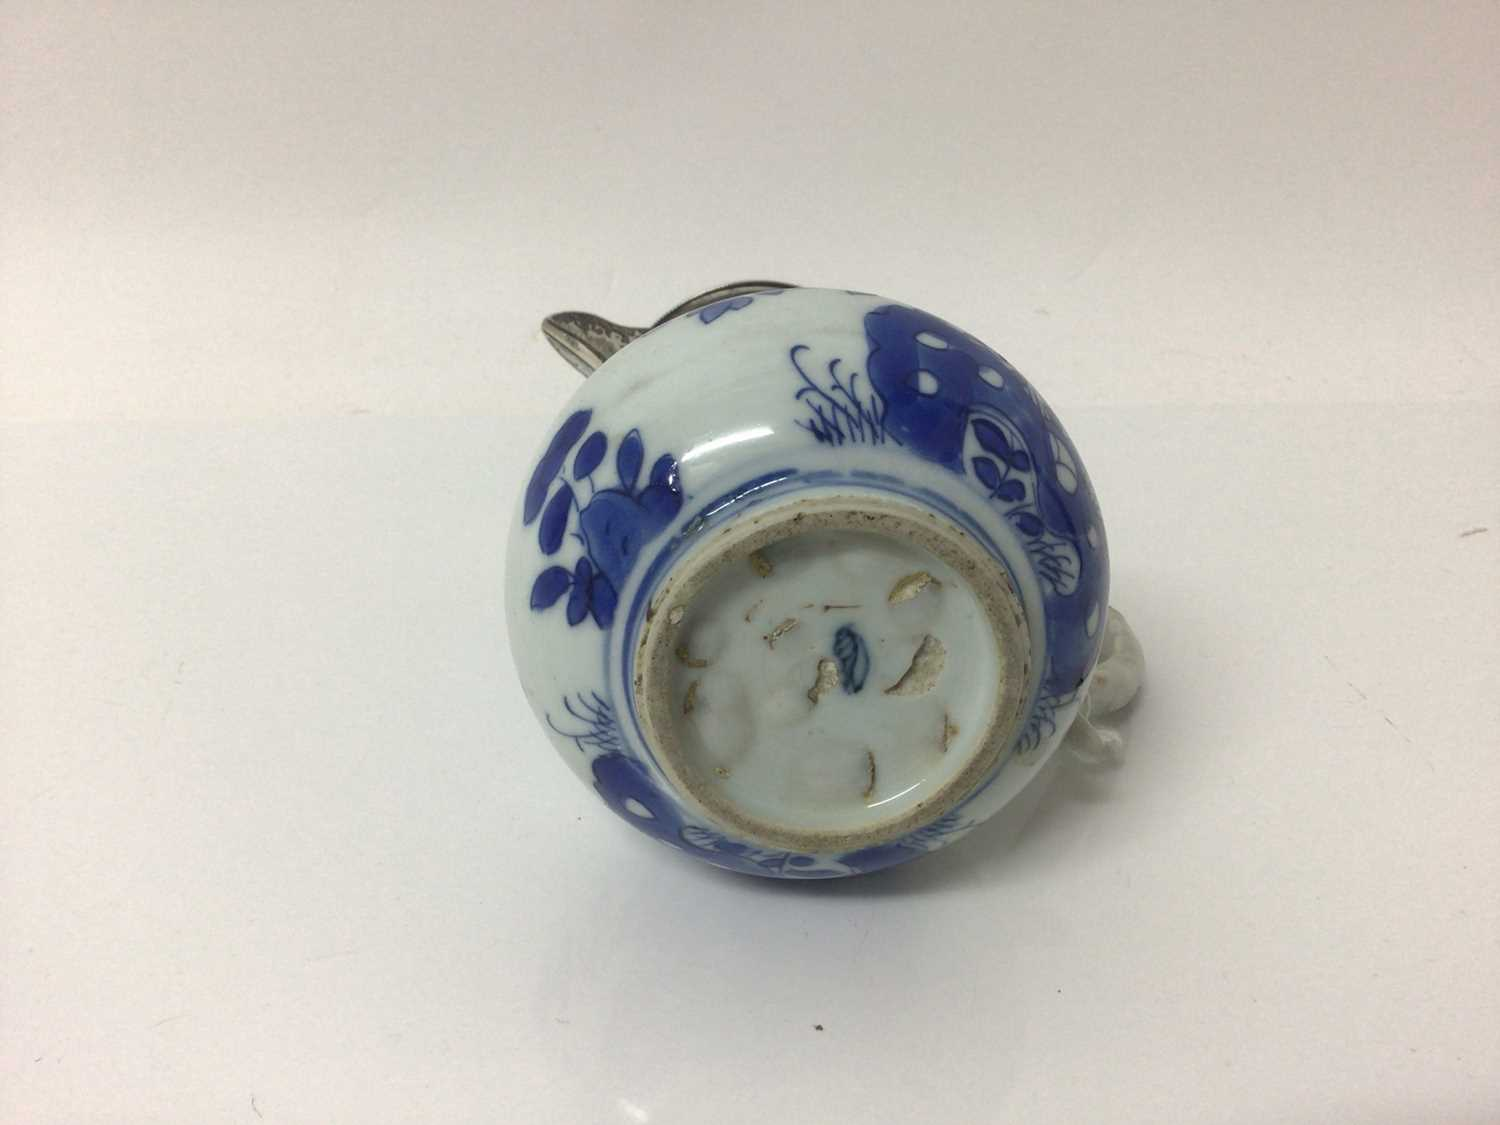 Chinese Kangxi porcelain jug and cover with later silver mount, together with a bowl (2) - Image 13 of 16